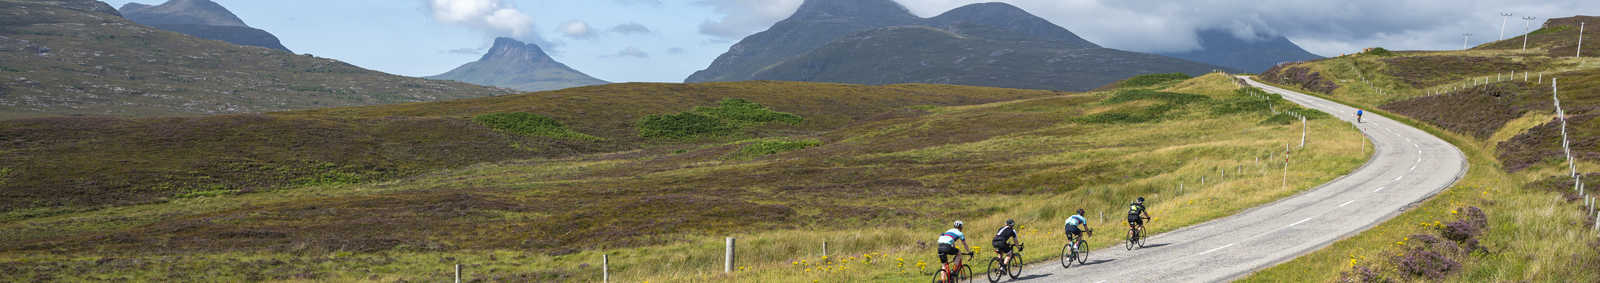 Cycling the Scottish Highlands